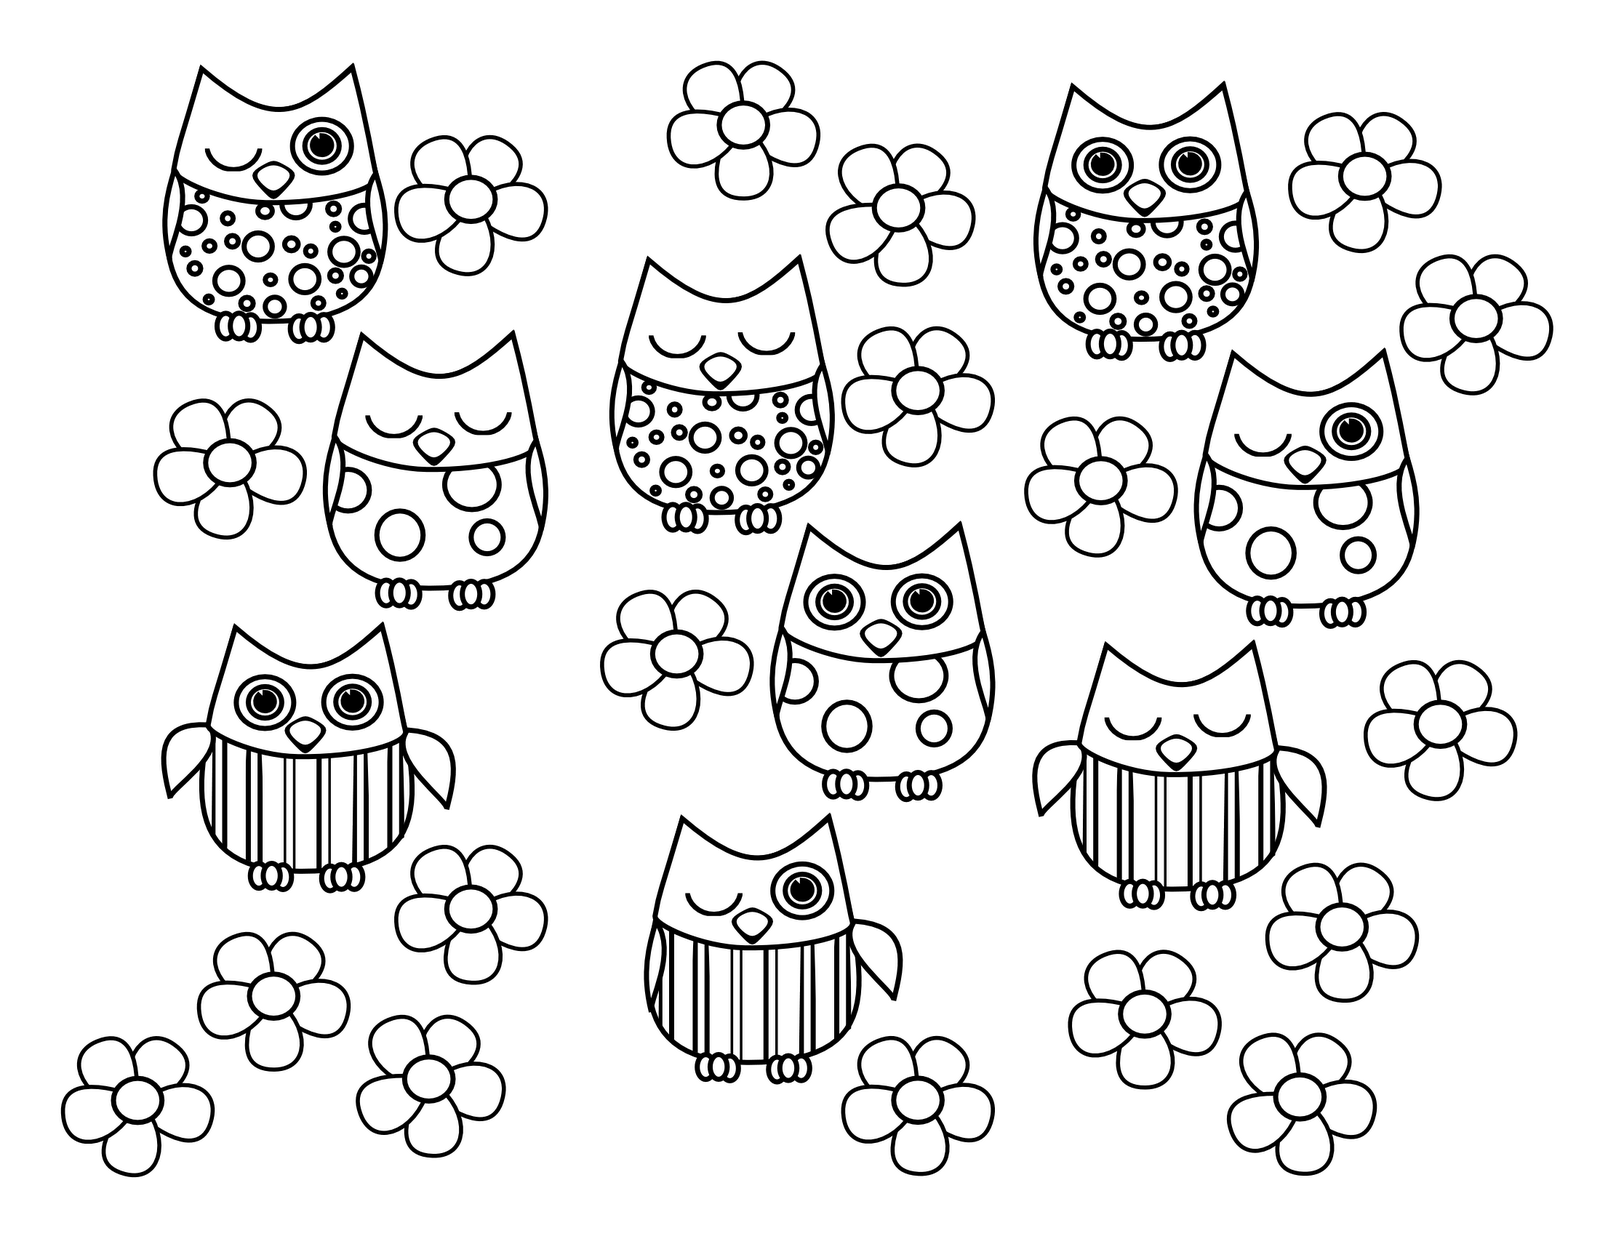 coloring pages of cute owls - photo#11